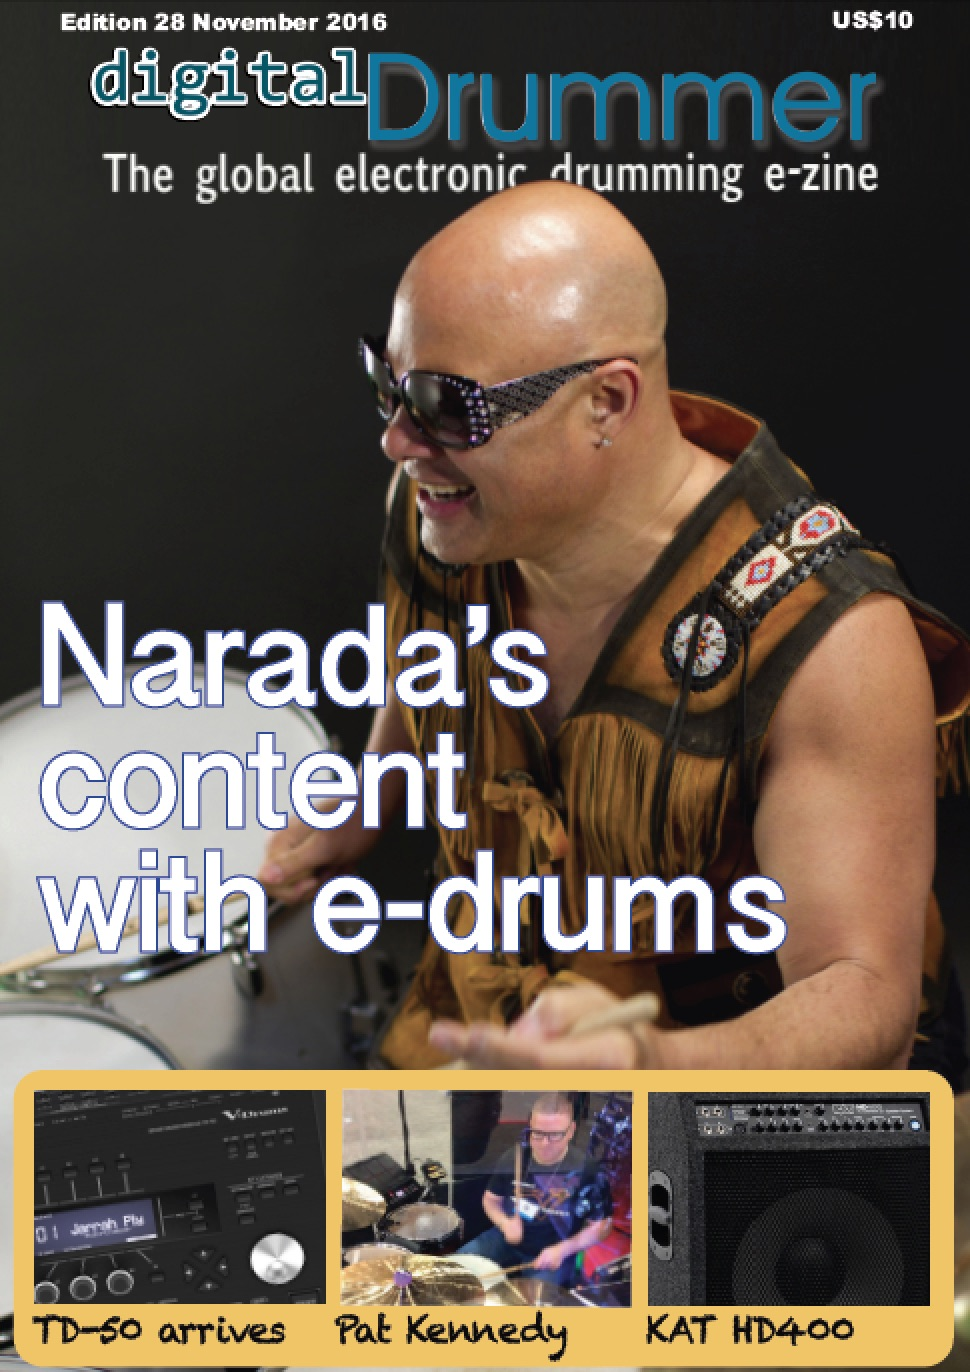 Read the latest edition of digitalDrummer